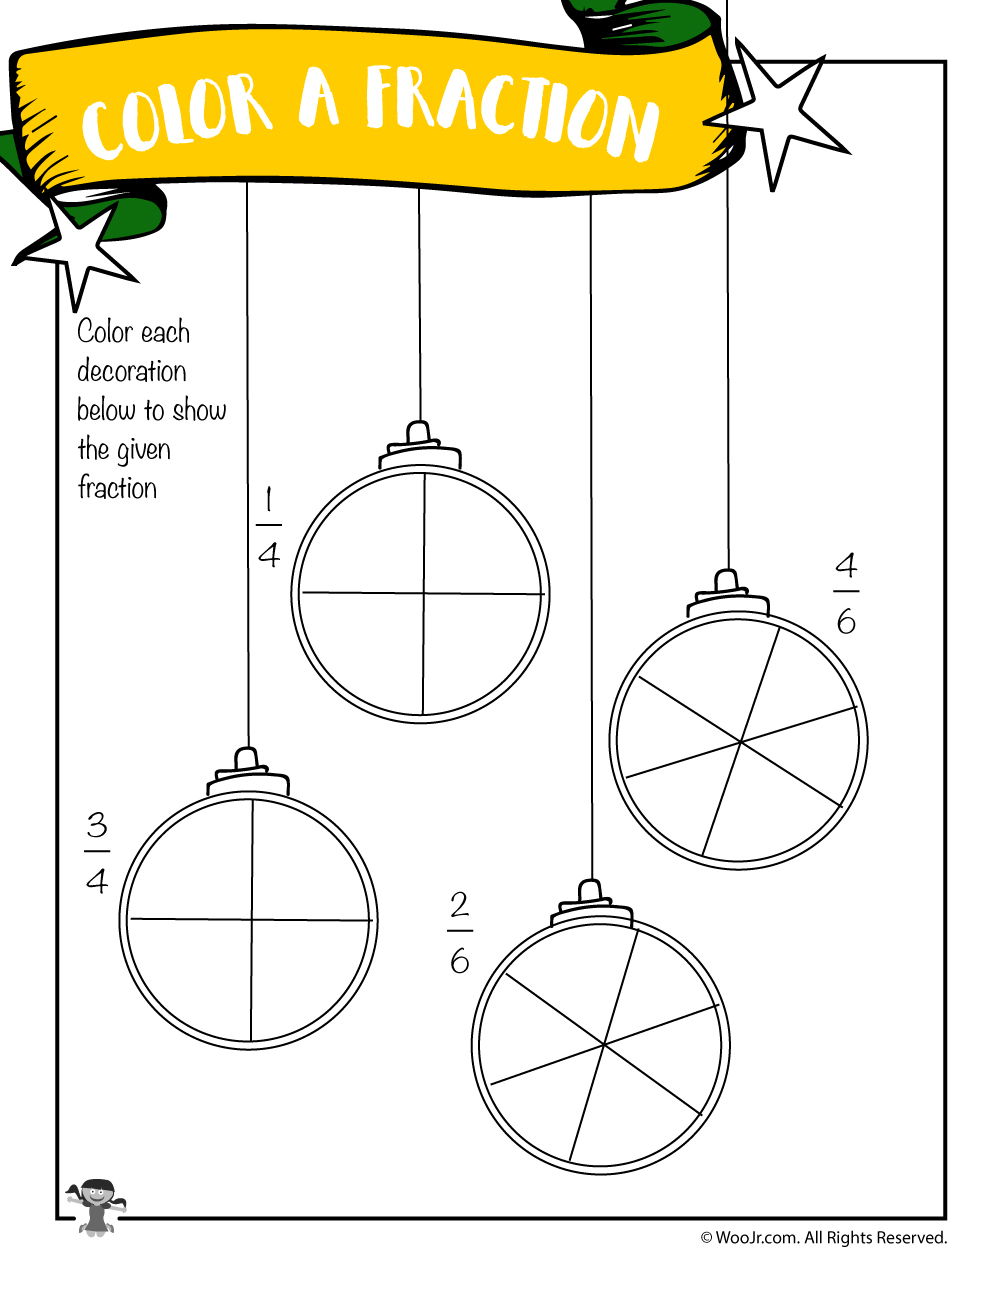 Color The Fraction Worksheet With Christmas Ornaments | Woo